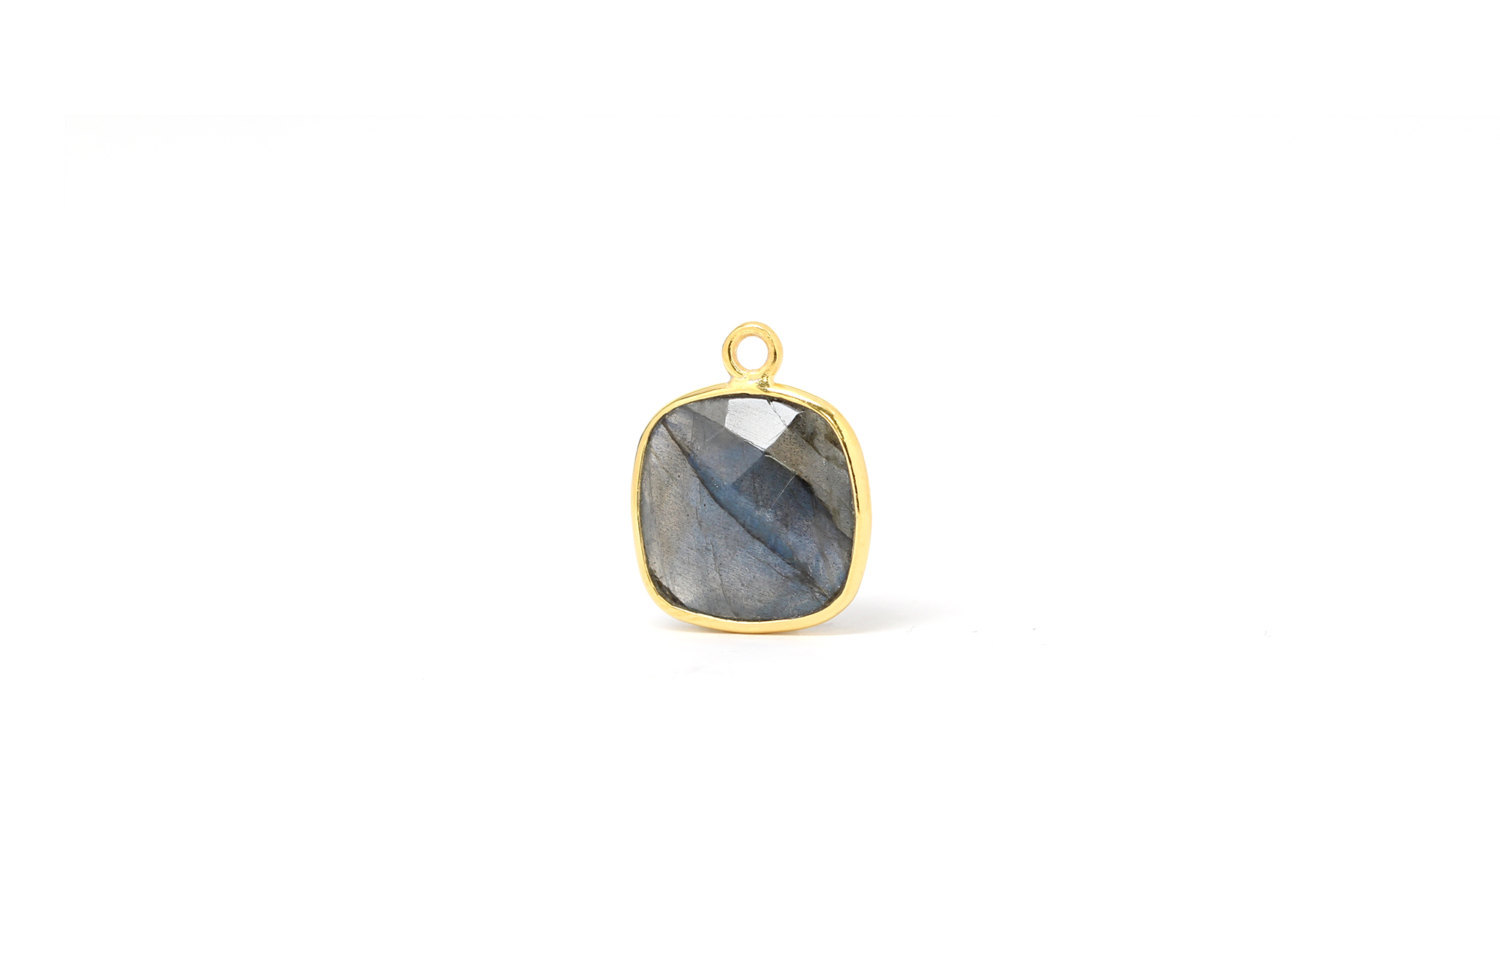 Primary image for  Bezel Drop, Labradorite Square, Gold Plated Sterling Silver, 12mm, 1Pc (7212)/1